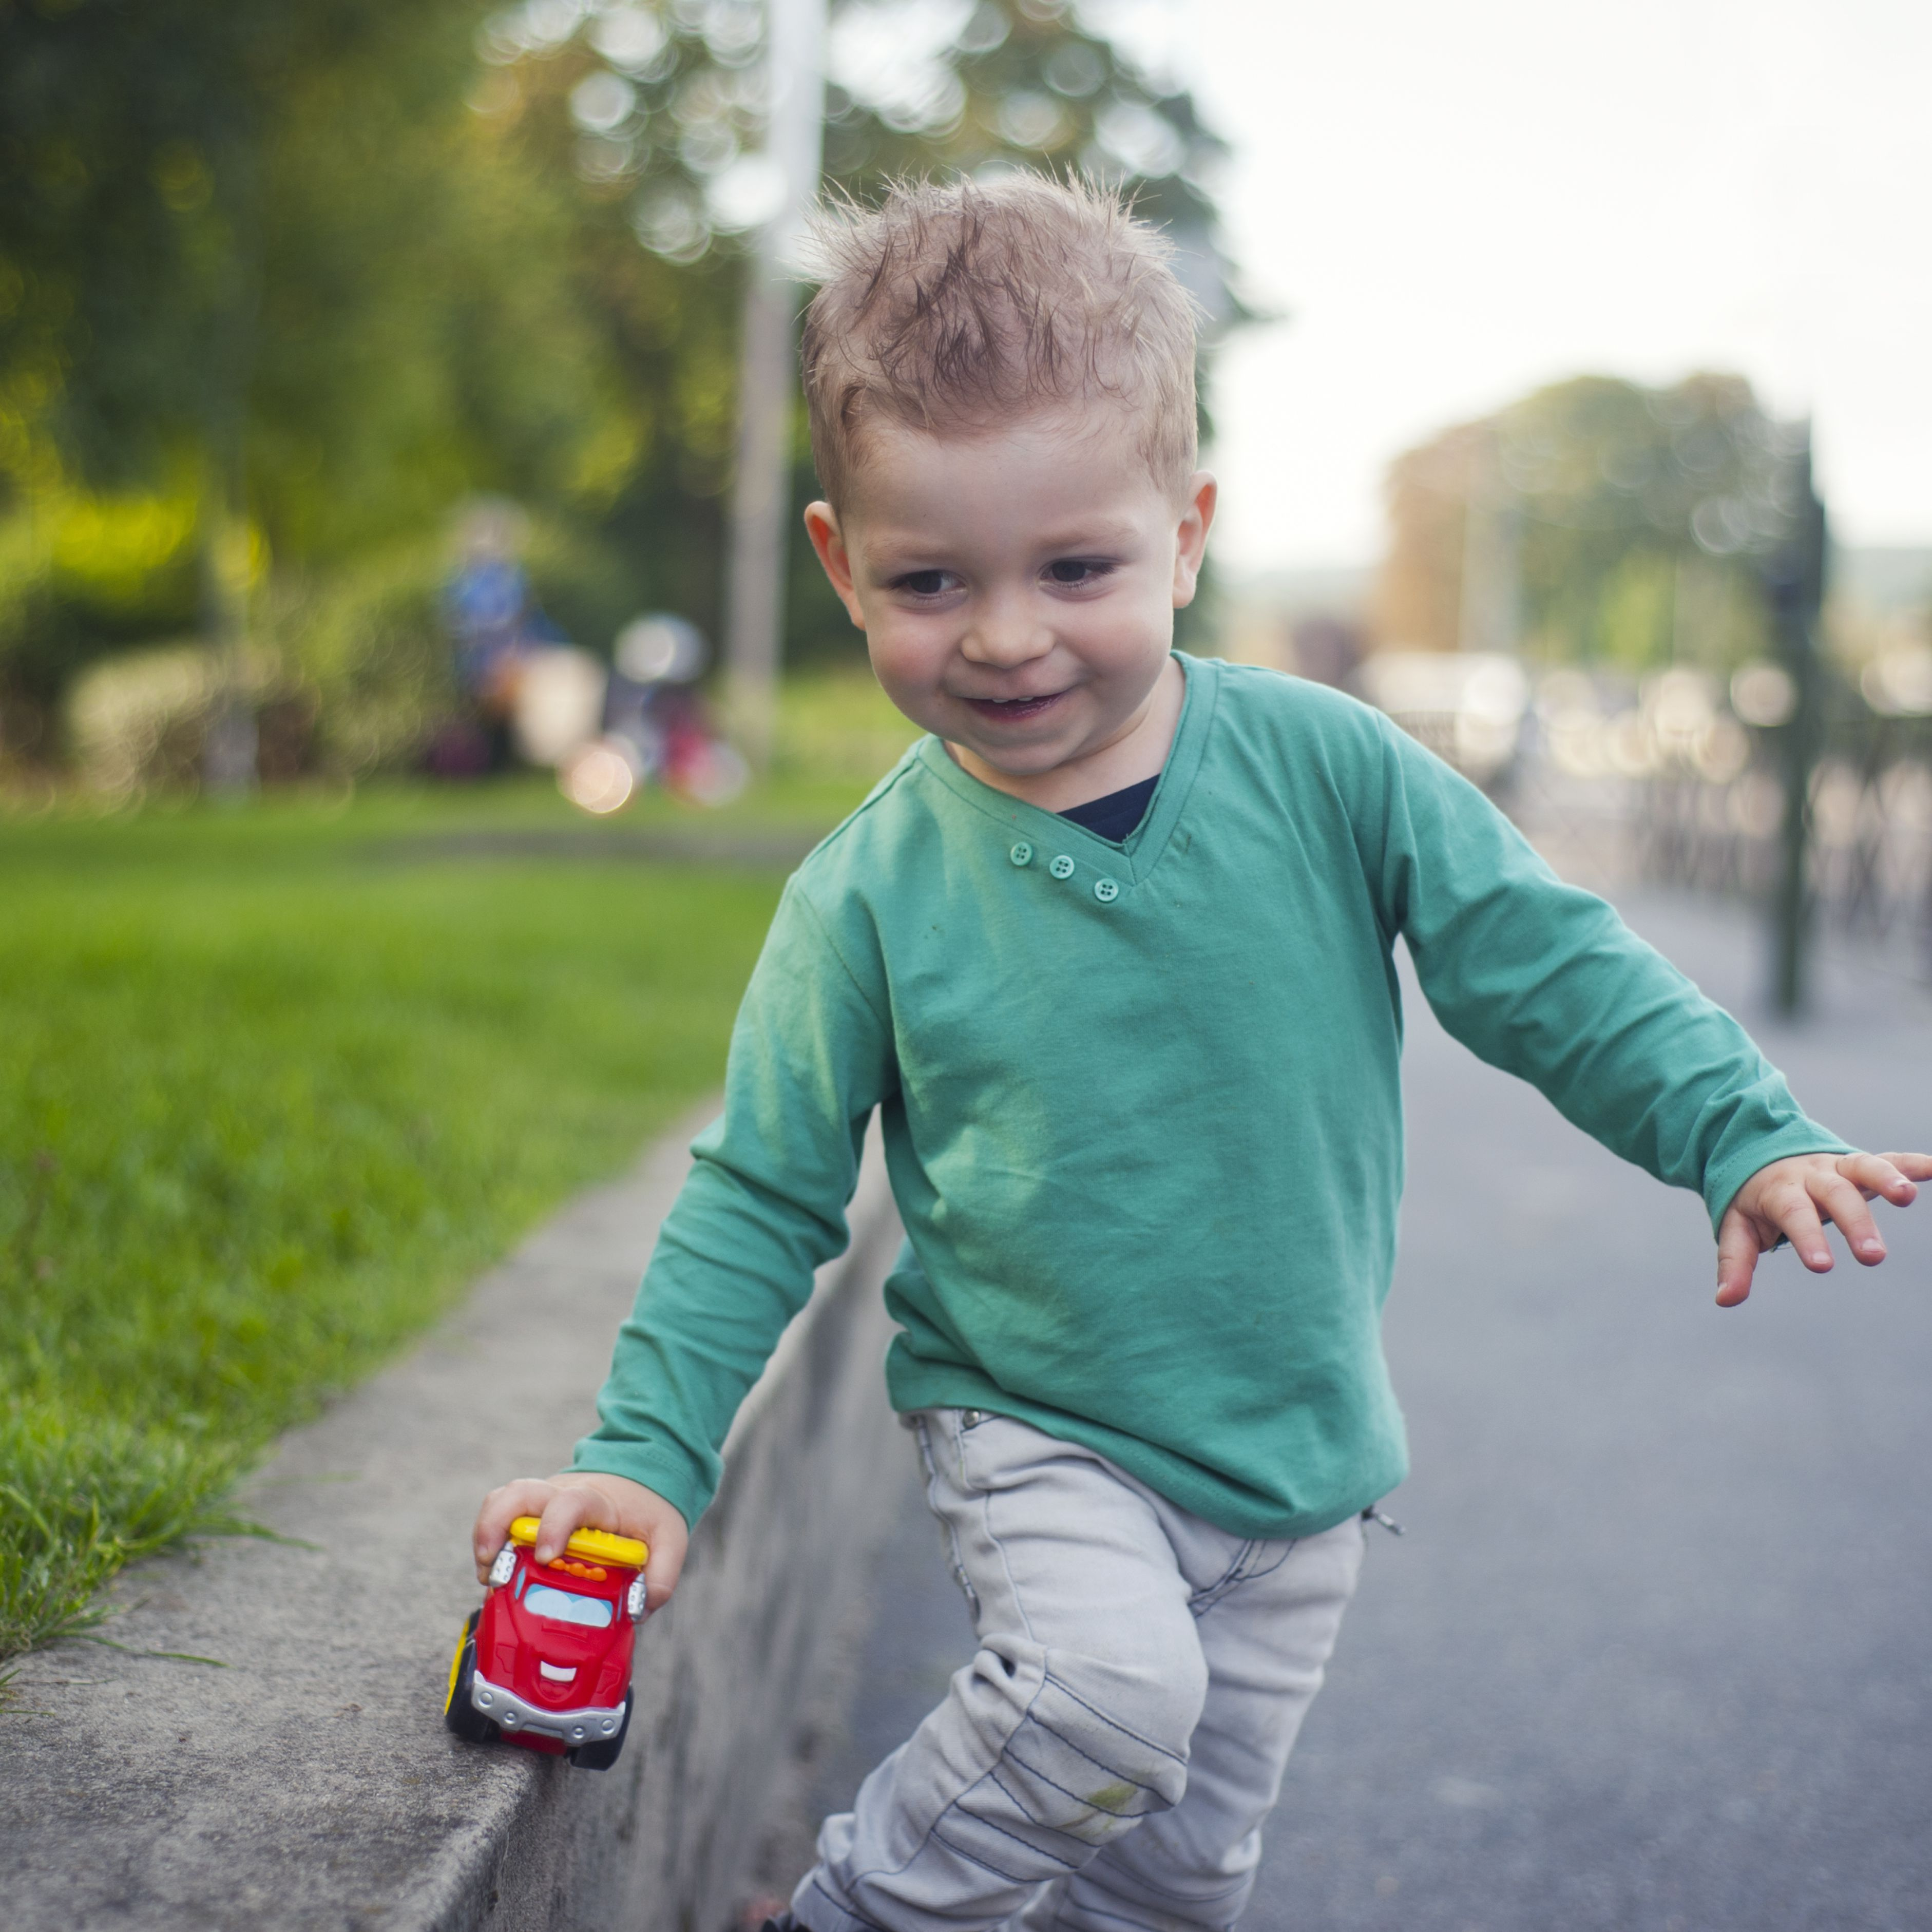 ea1f13114 The 9 Best Toys for Toddler Boys in 2019